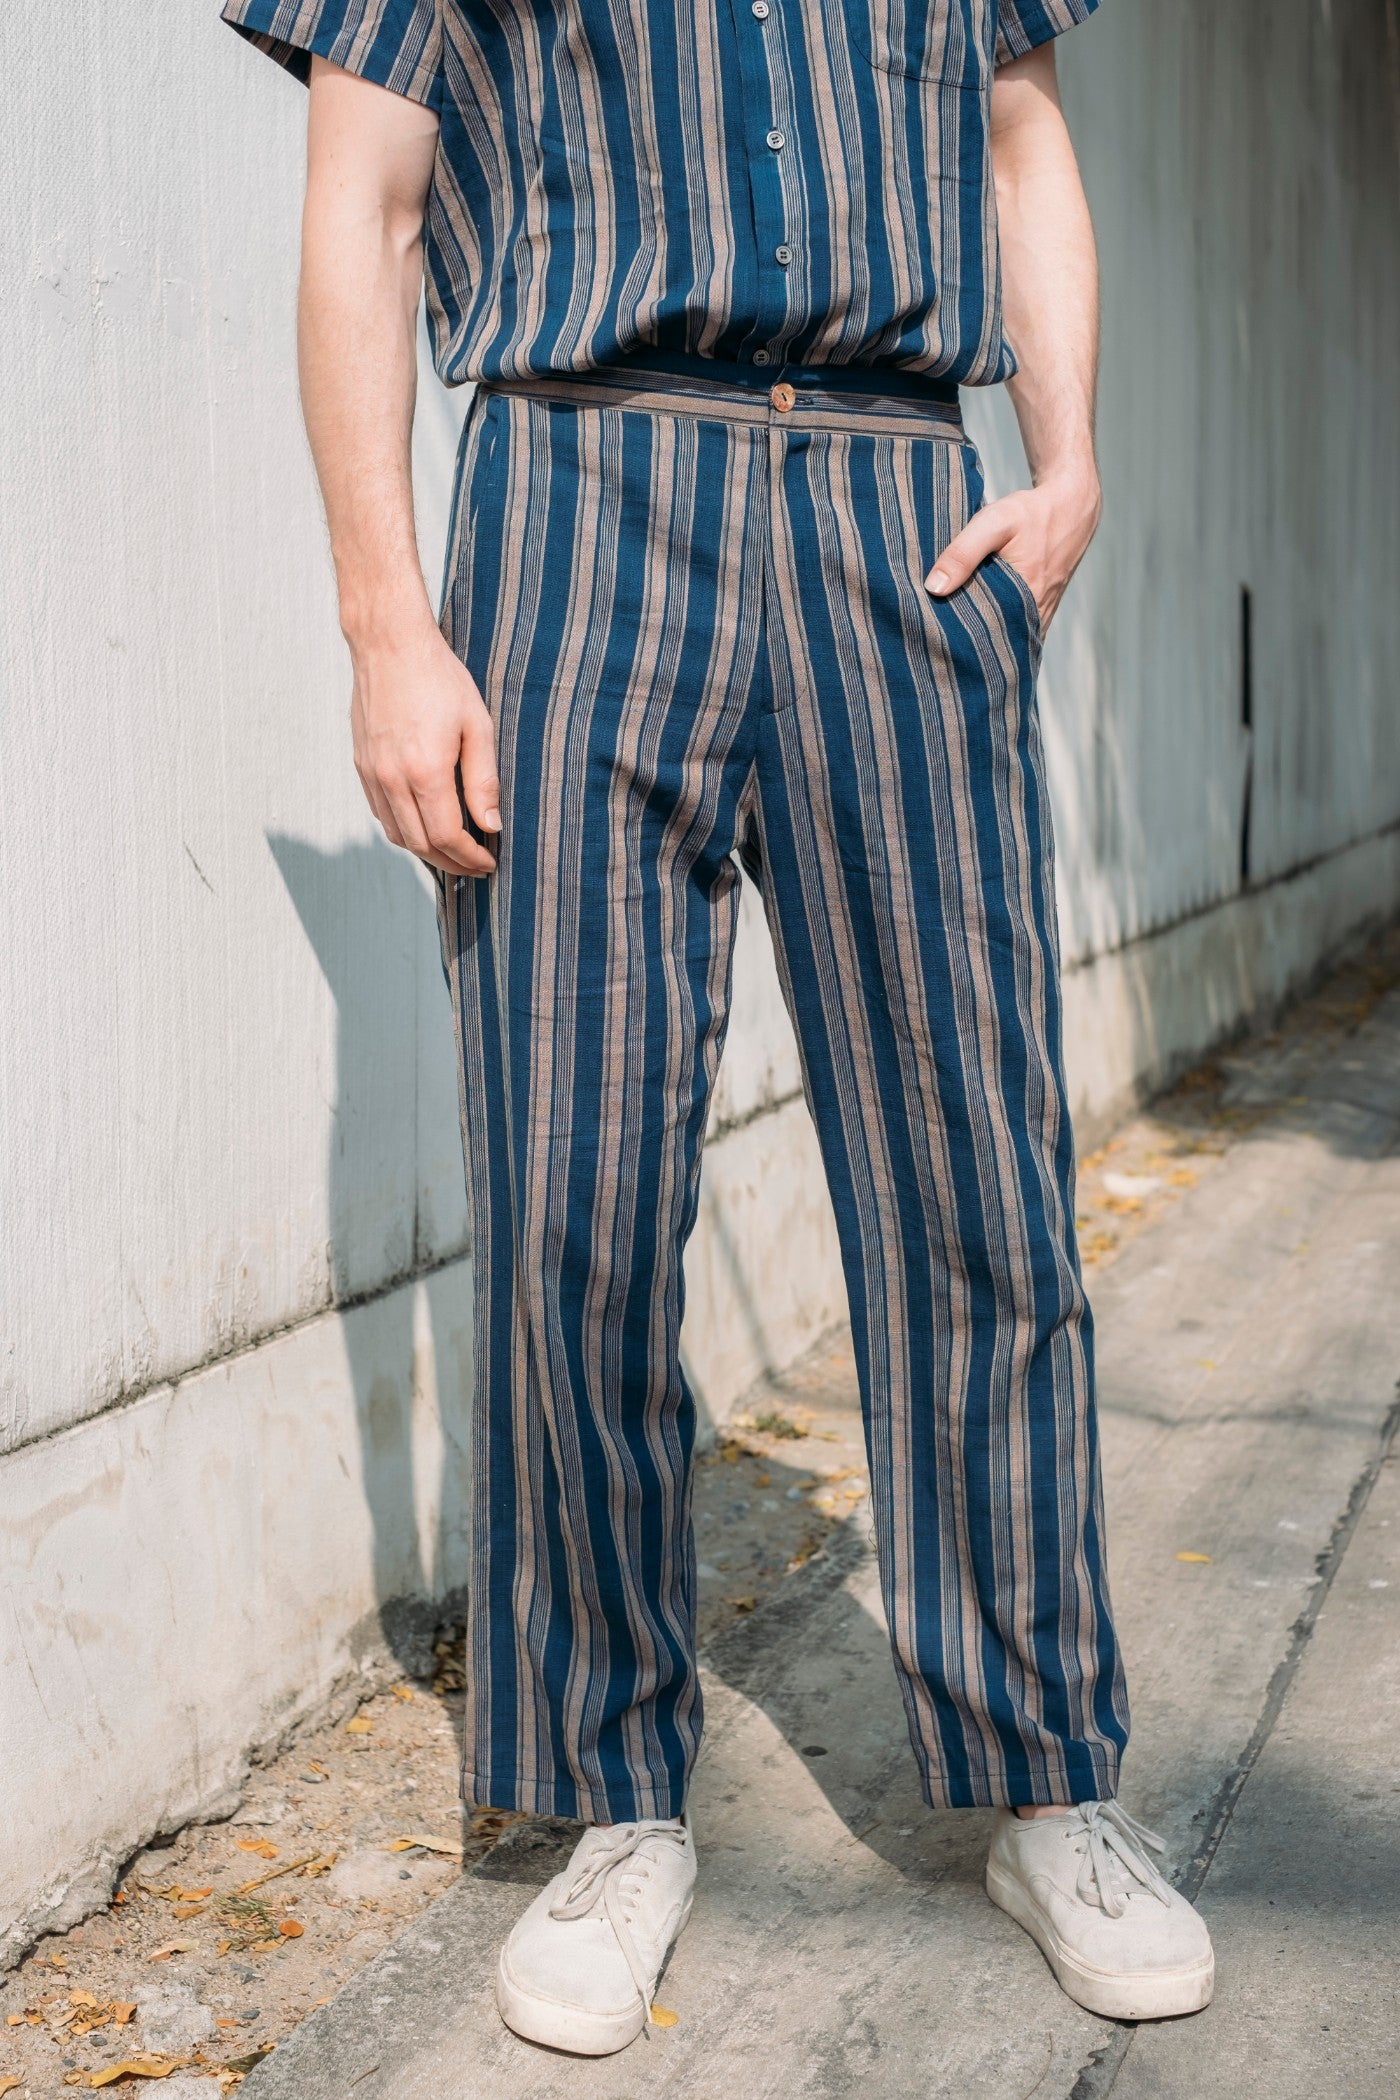 Leisure Trousers - Indigo Stripes